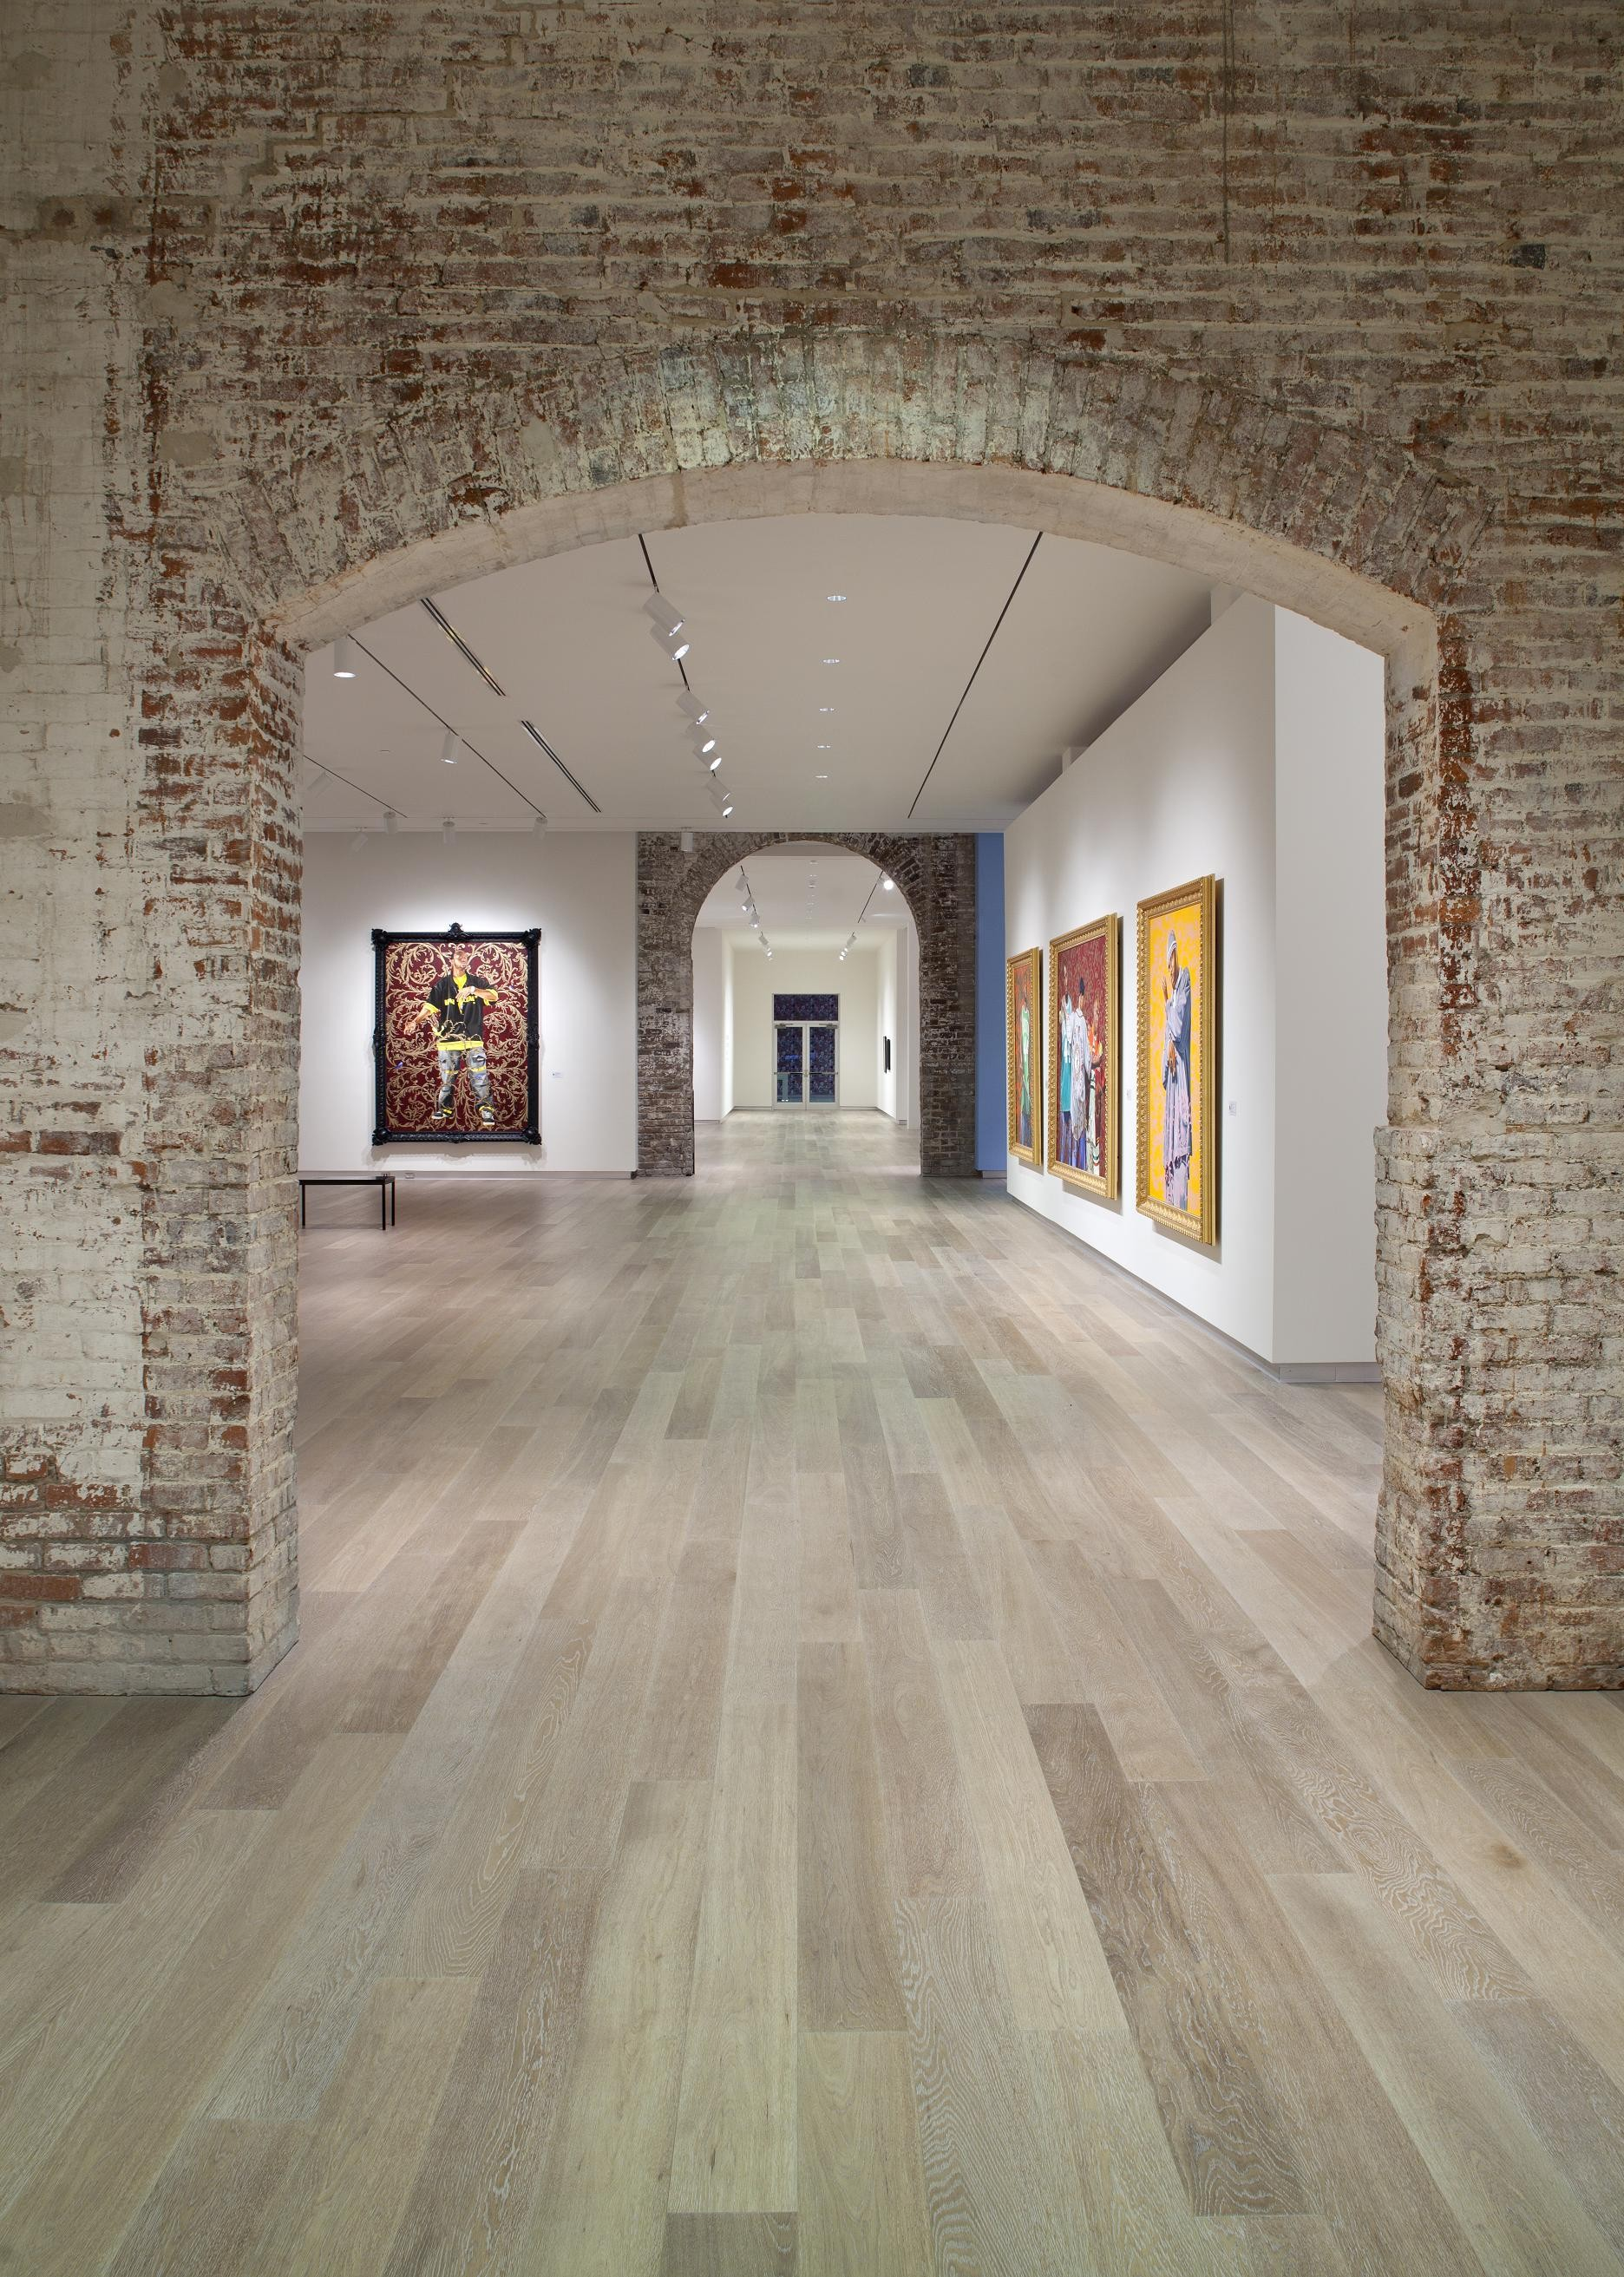 SCAD Museum Of Art Sottile And Lord Aeck Sargent In Association With Dawson Architects